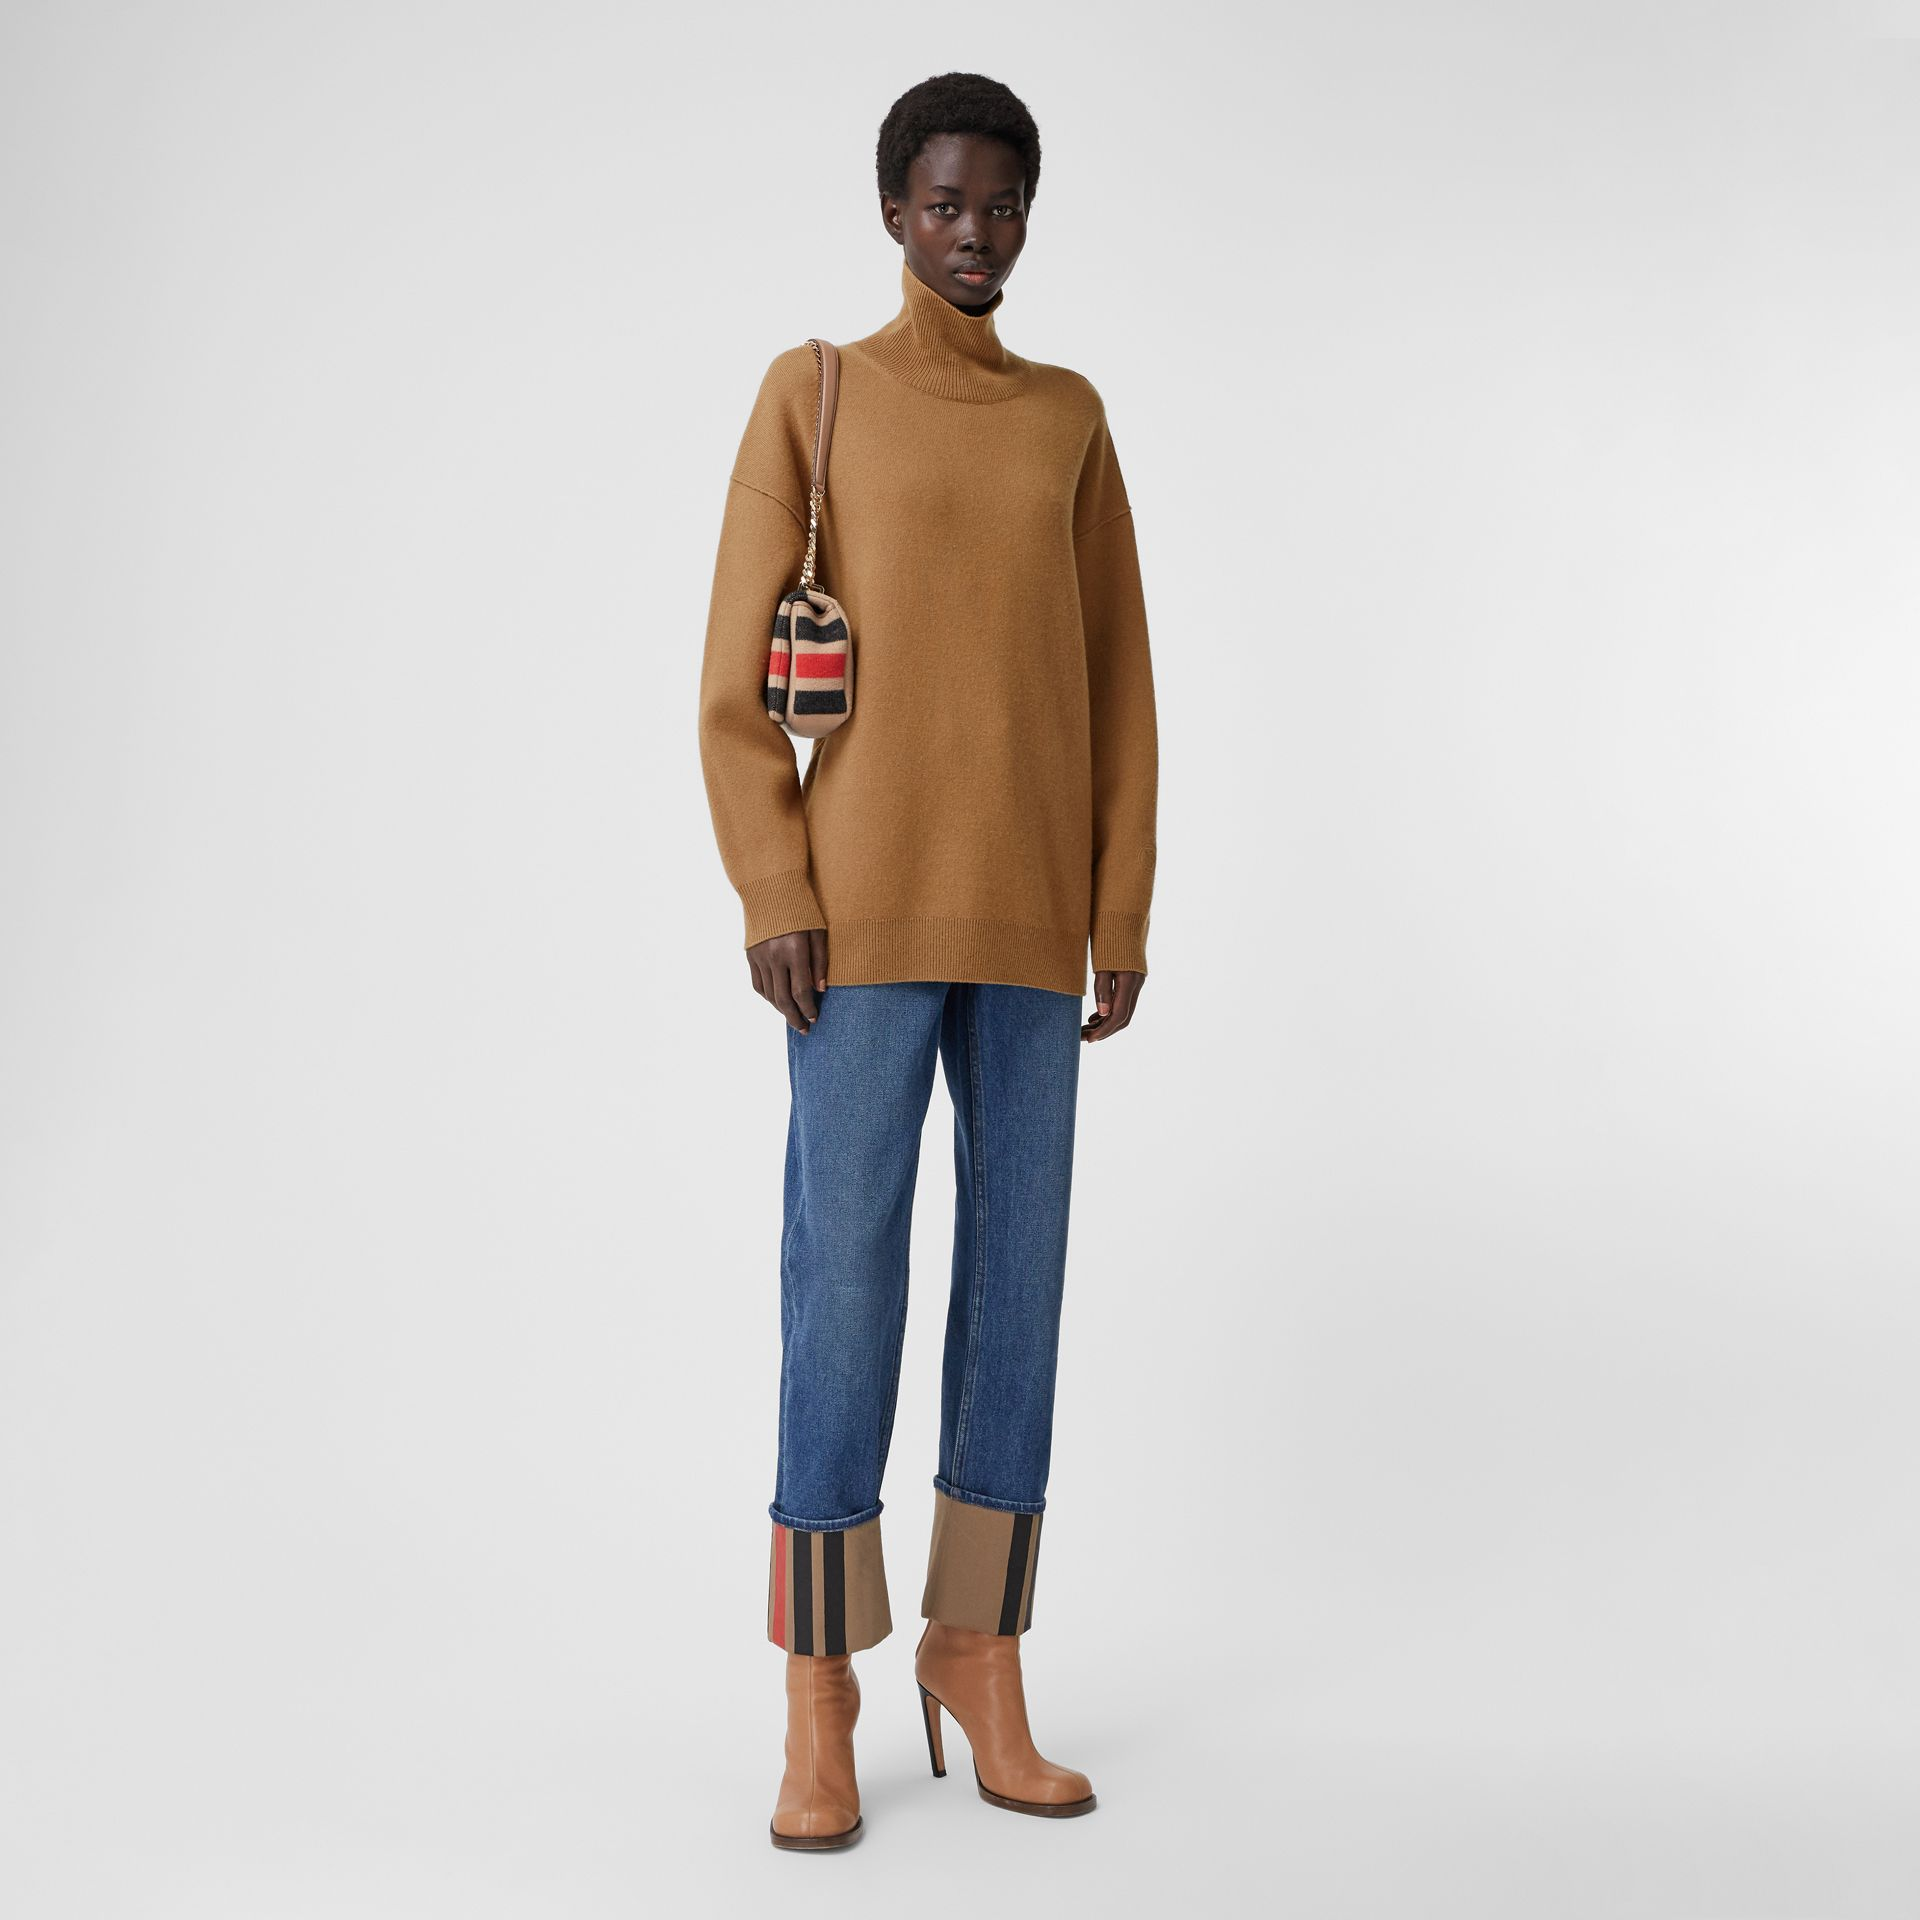 Monogram Motif Cashmere Blend Funnel Neck Sweater in Camel - Women | Burberry - gallery image 0